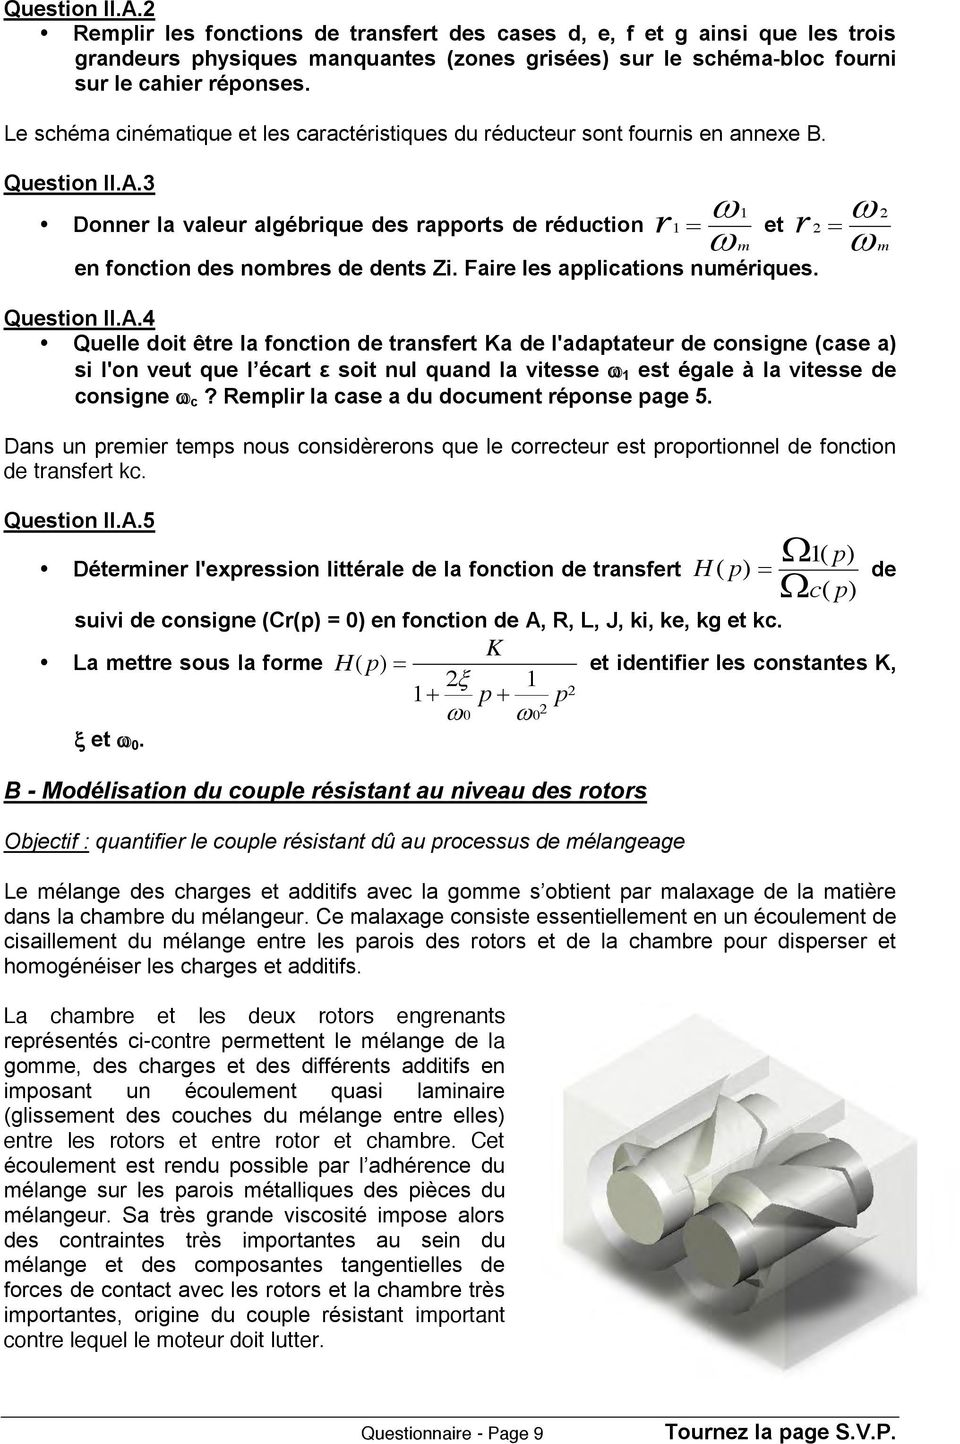 3 Donner la valeur algébrique des rapports de réduction 1 r 1 m et en fonction des nombres de dents Zi. Faire les applications numériques. 2 r 2 m Question II.A.